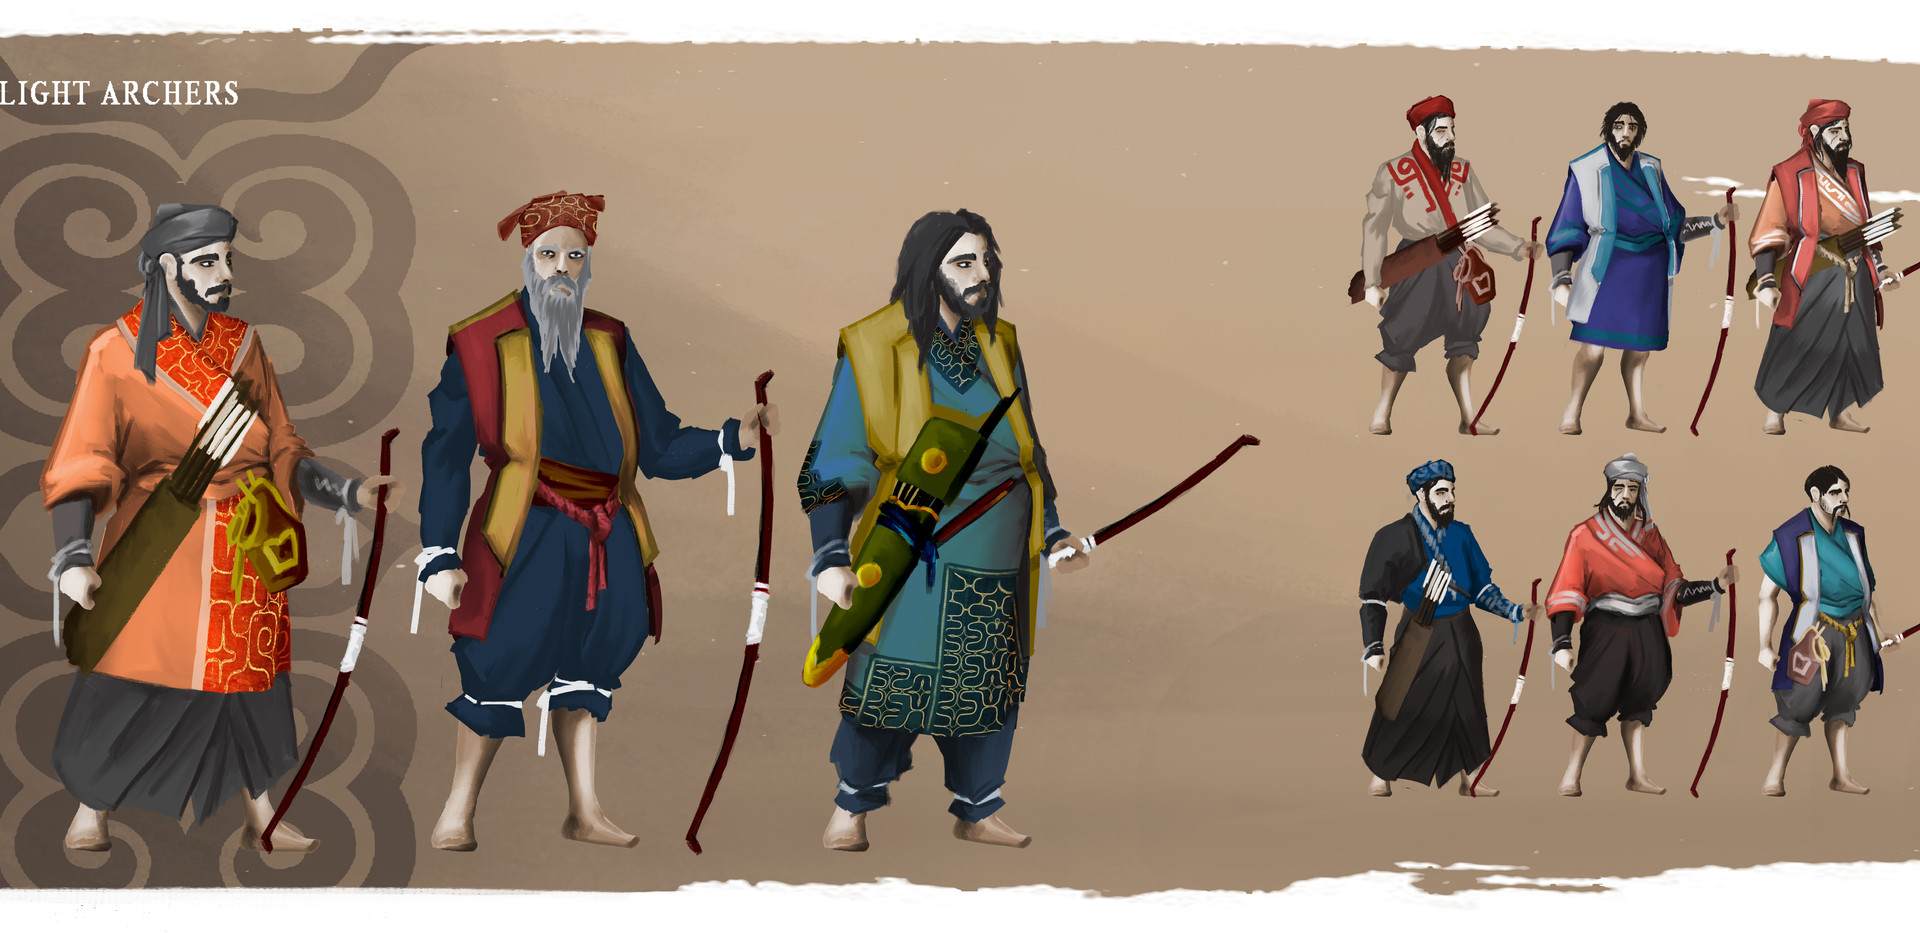 AINU Light Archers